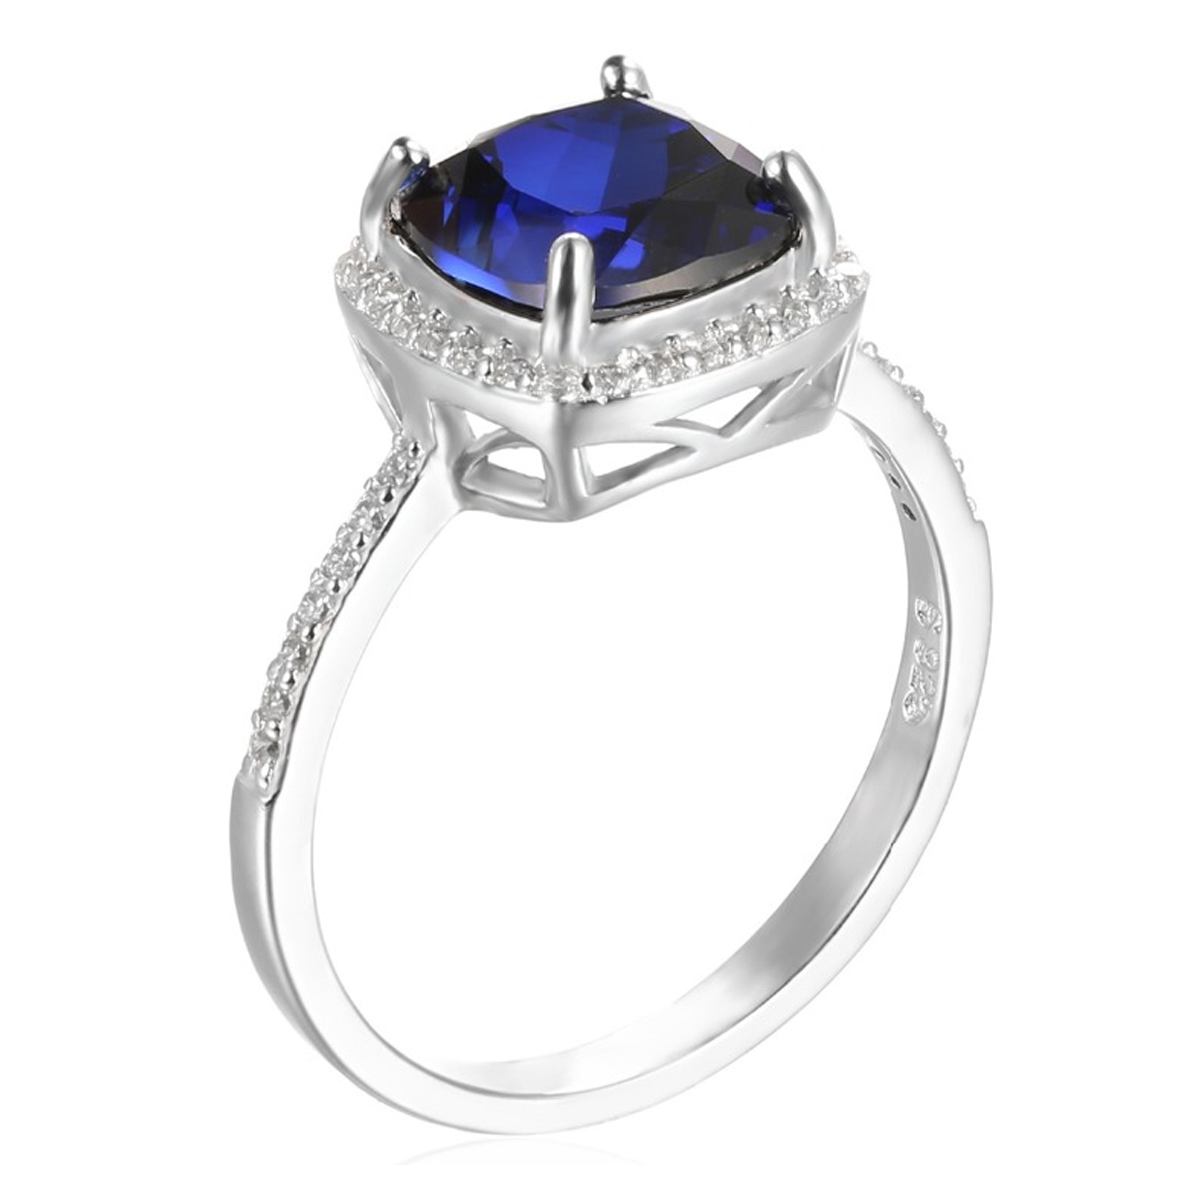 diamond cushion natural sapphire cut gems asfdsadf petra ring